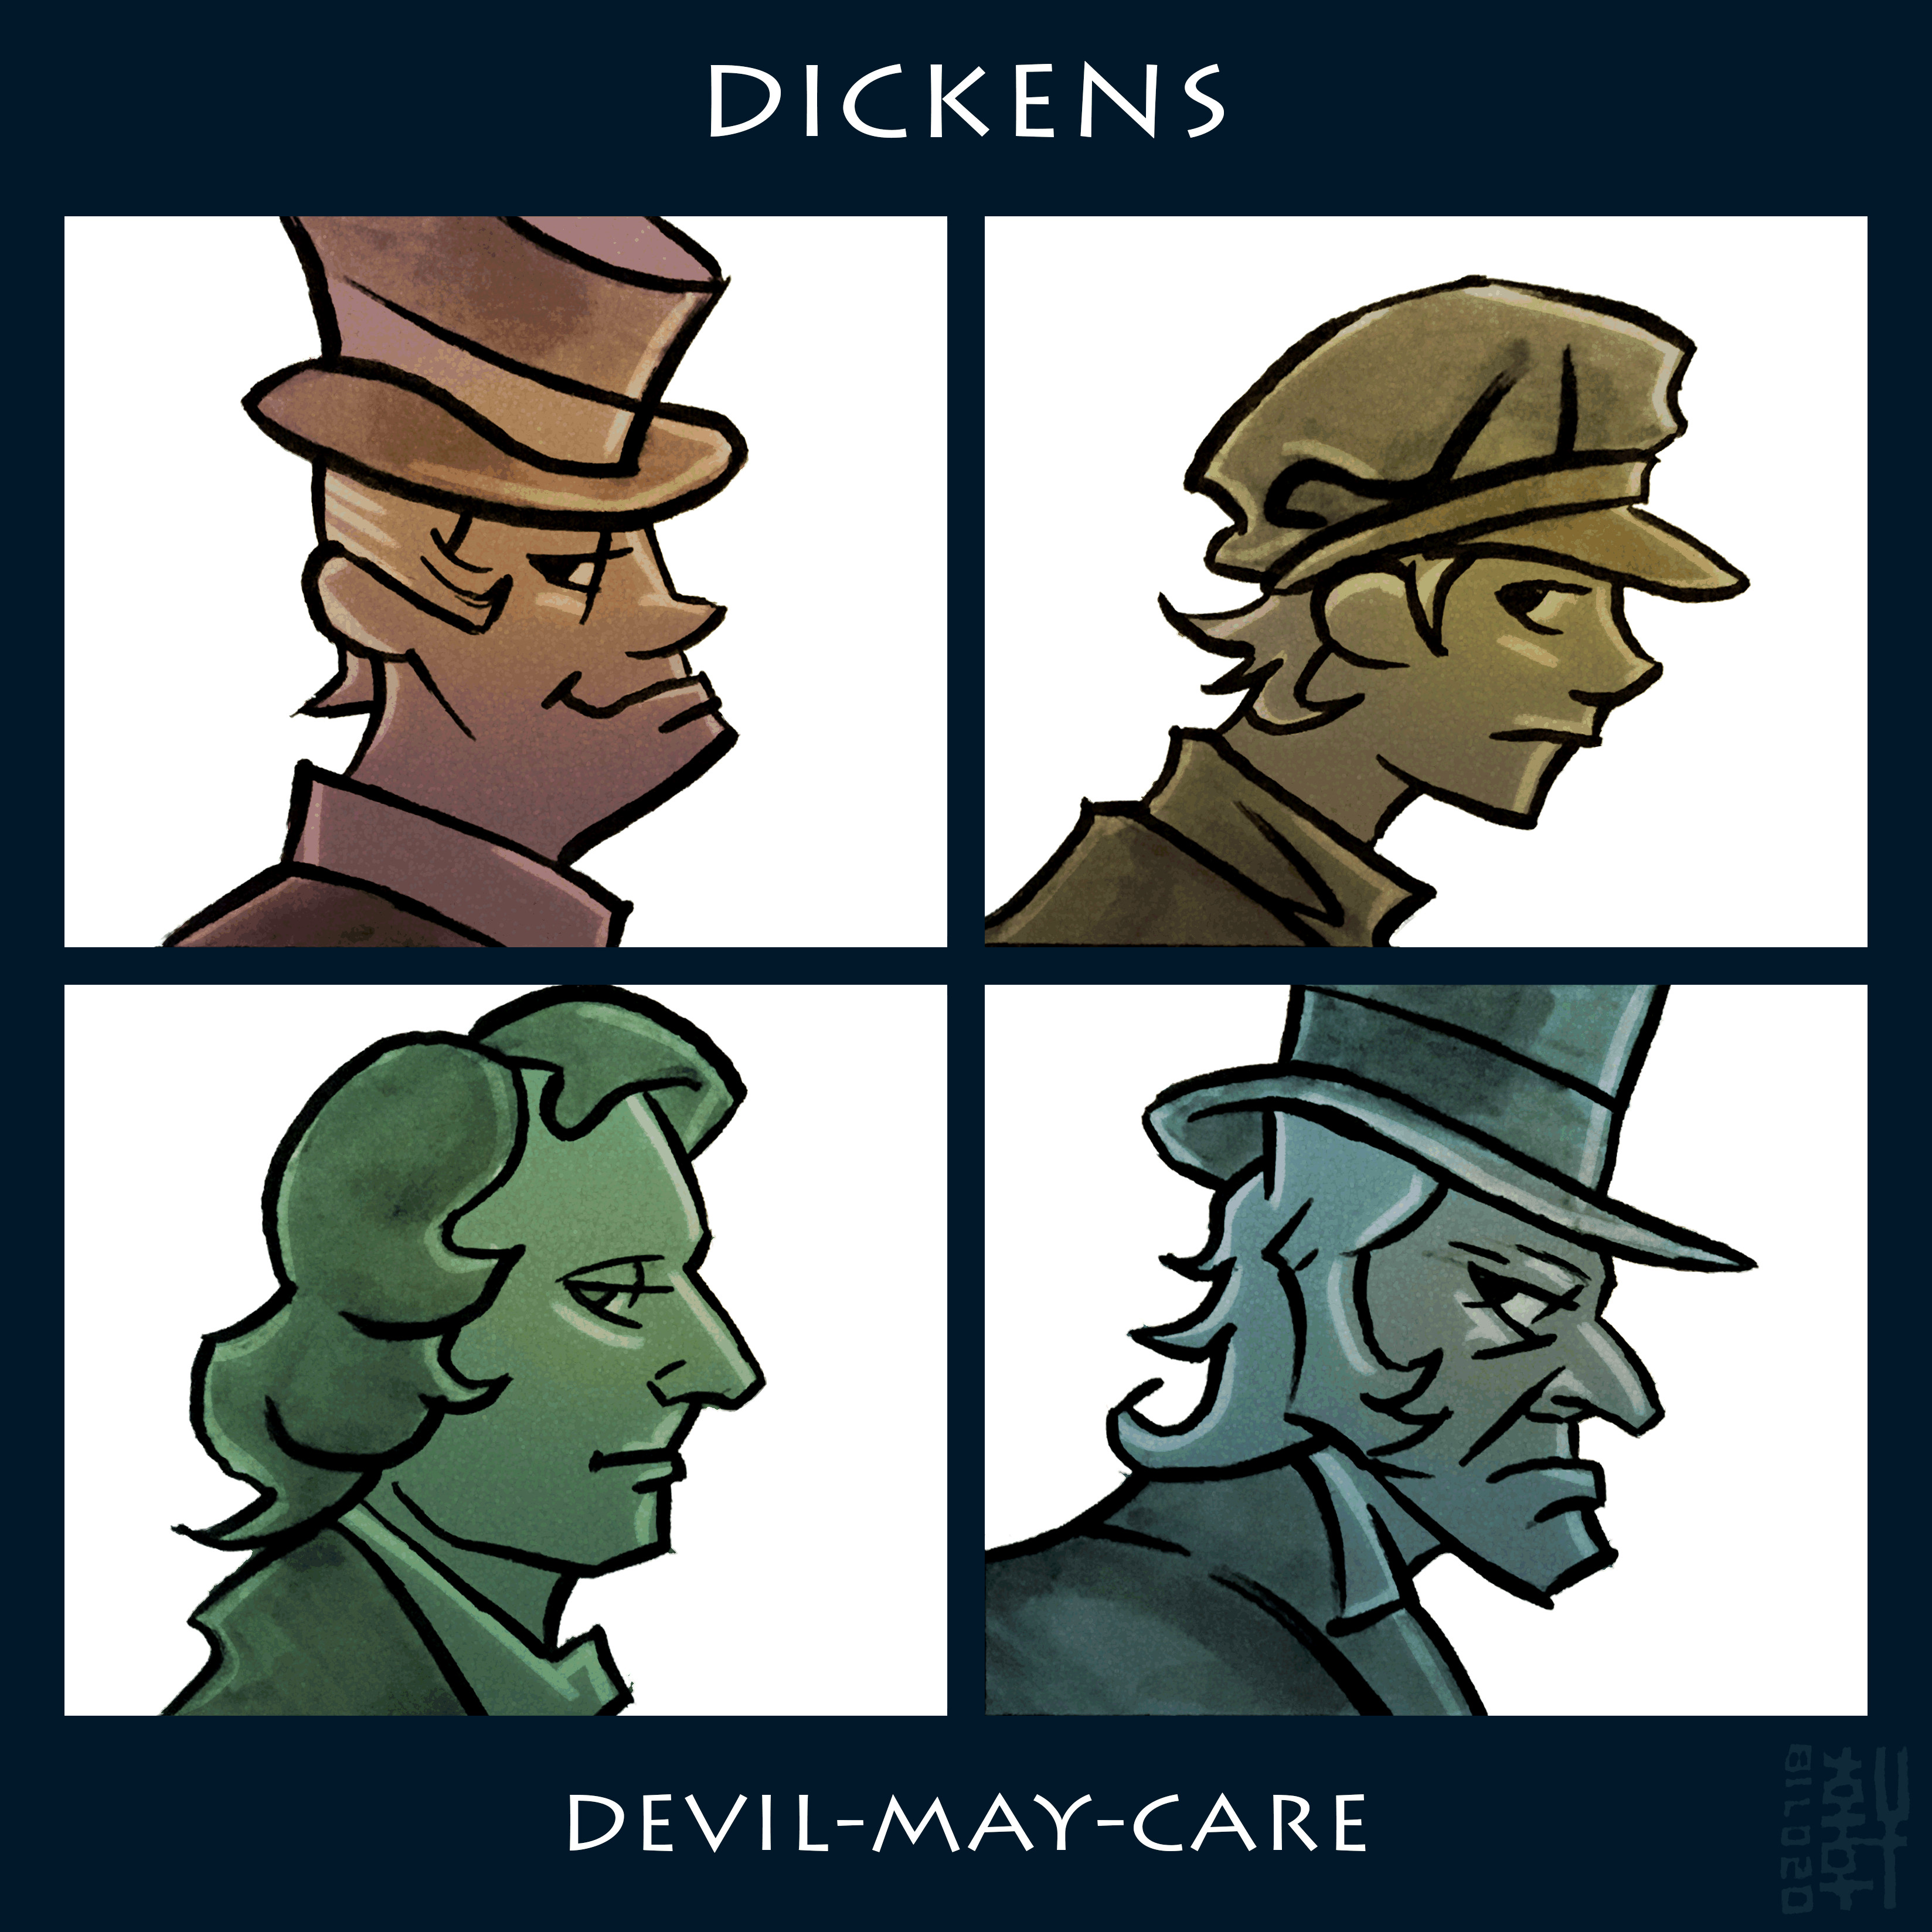 Day #15,140 - Dickens - Devil-May-Care